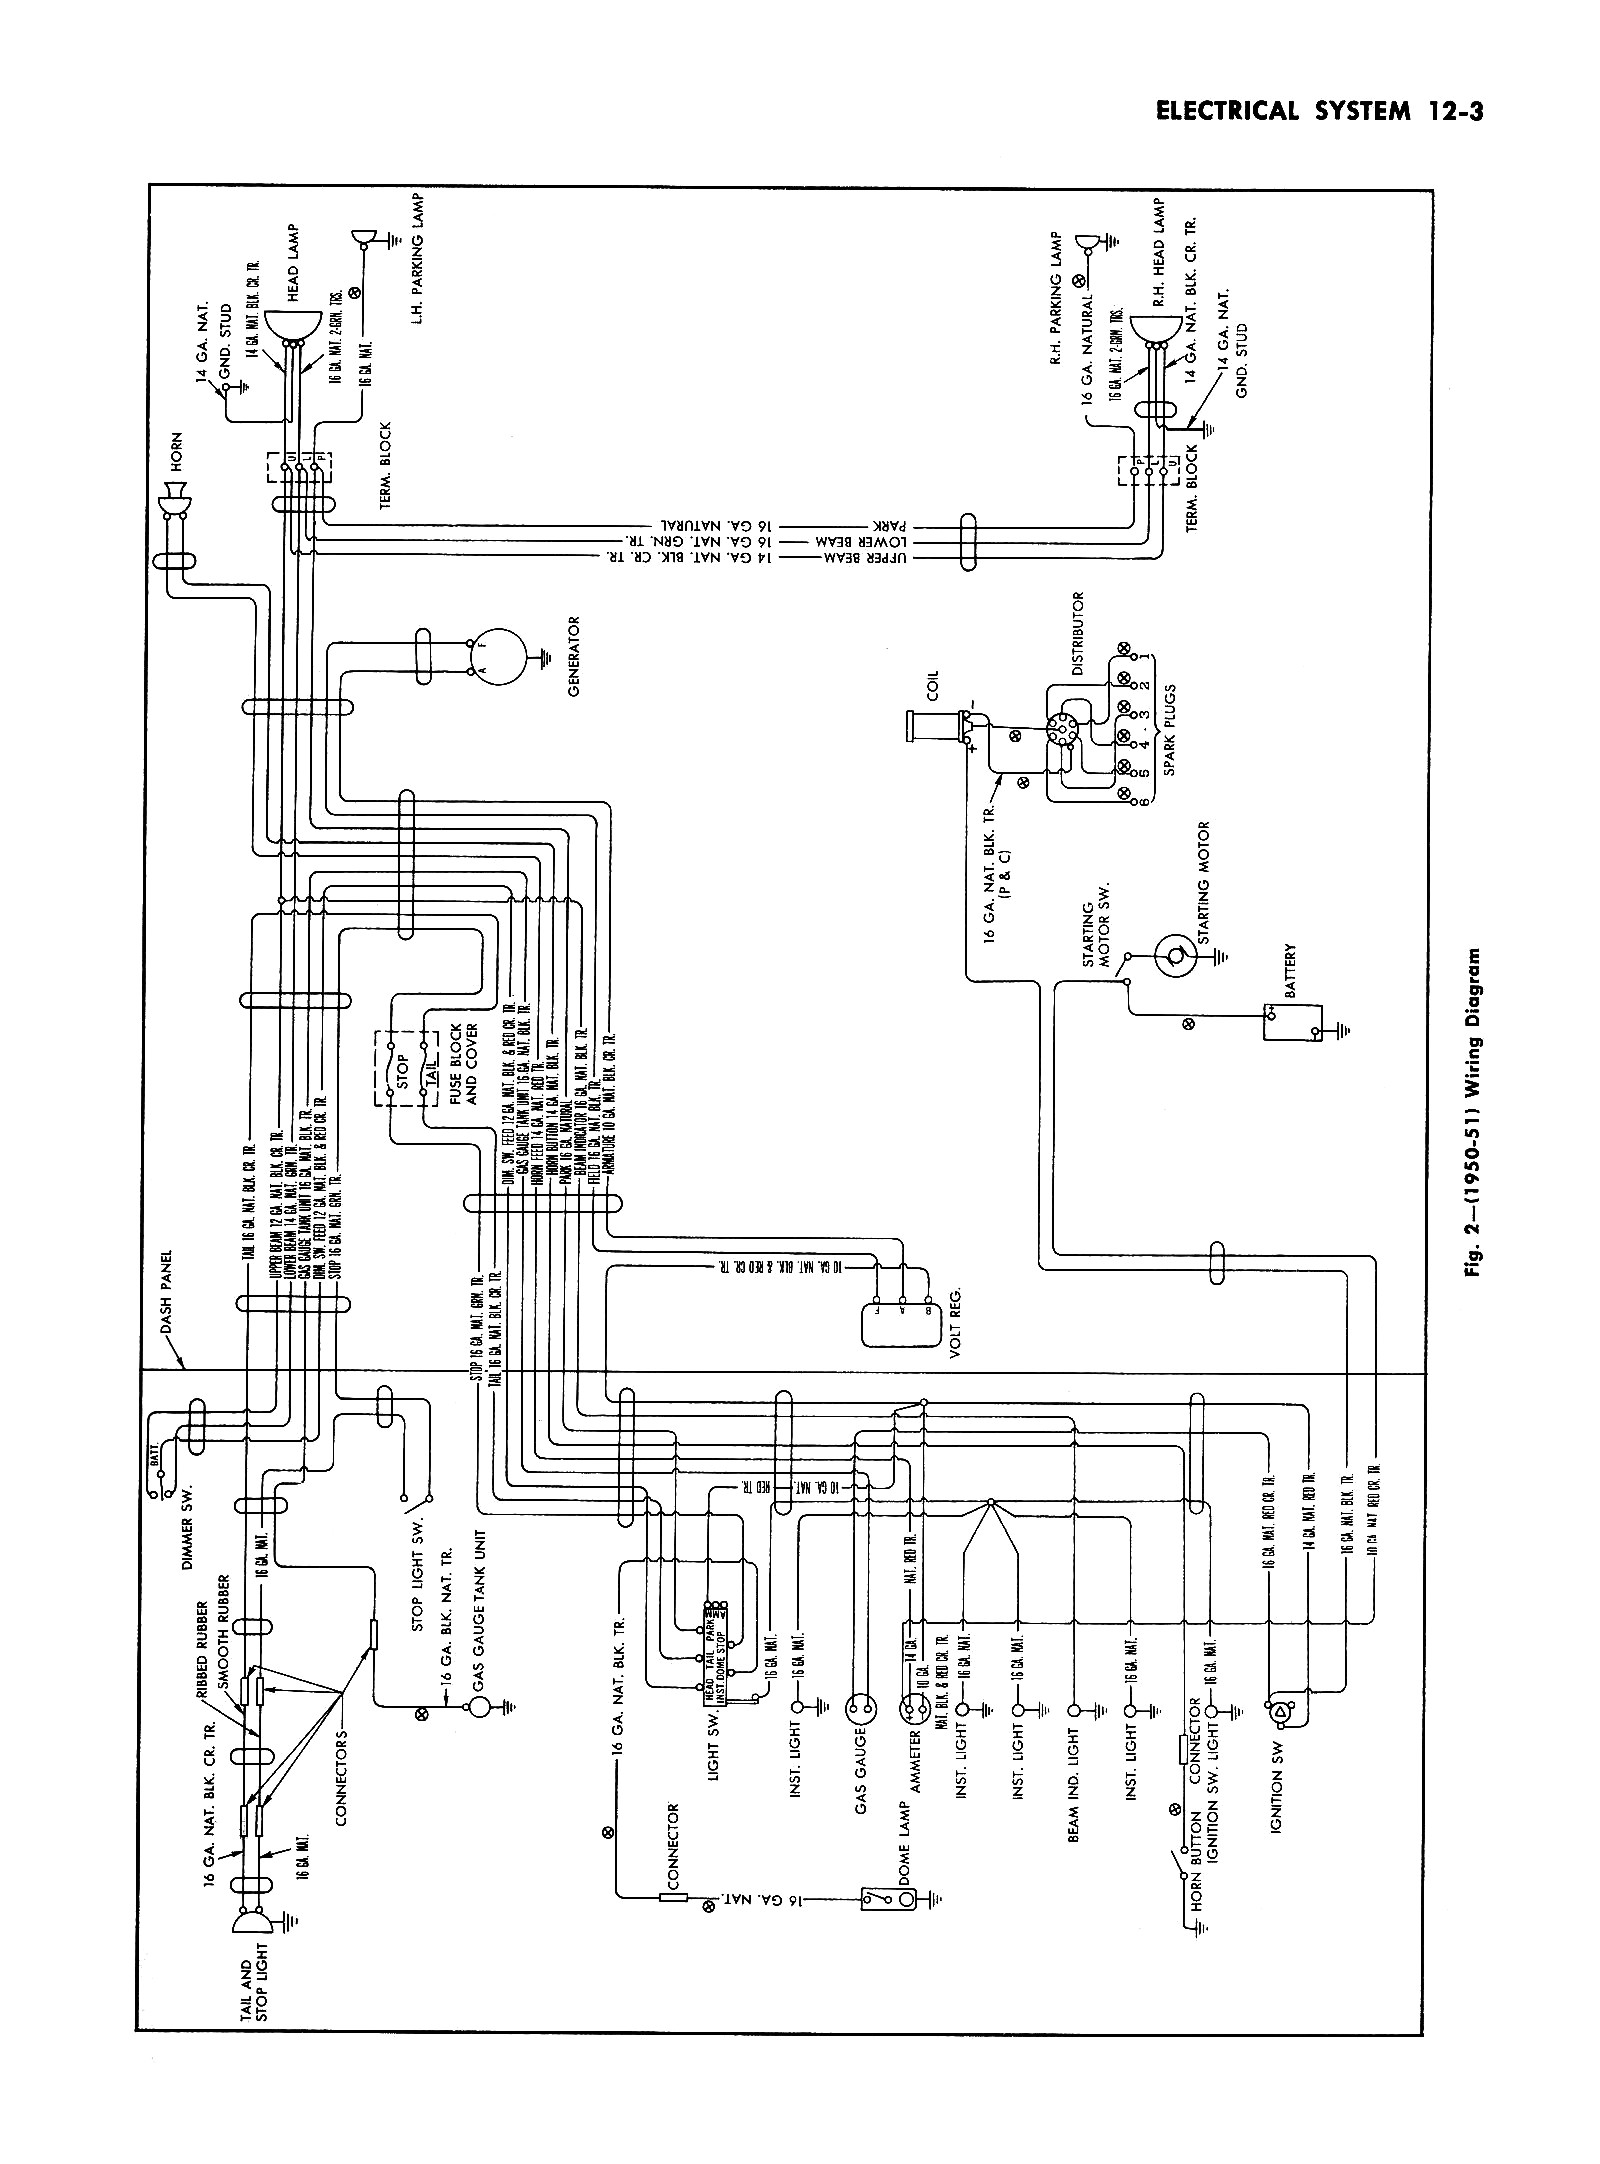 chevy wiring diagrams rh chevy oldcarmanualproject com Mercury 60 HP Wiring Diagram Mercury 200 Outboard Wiring Diagram